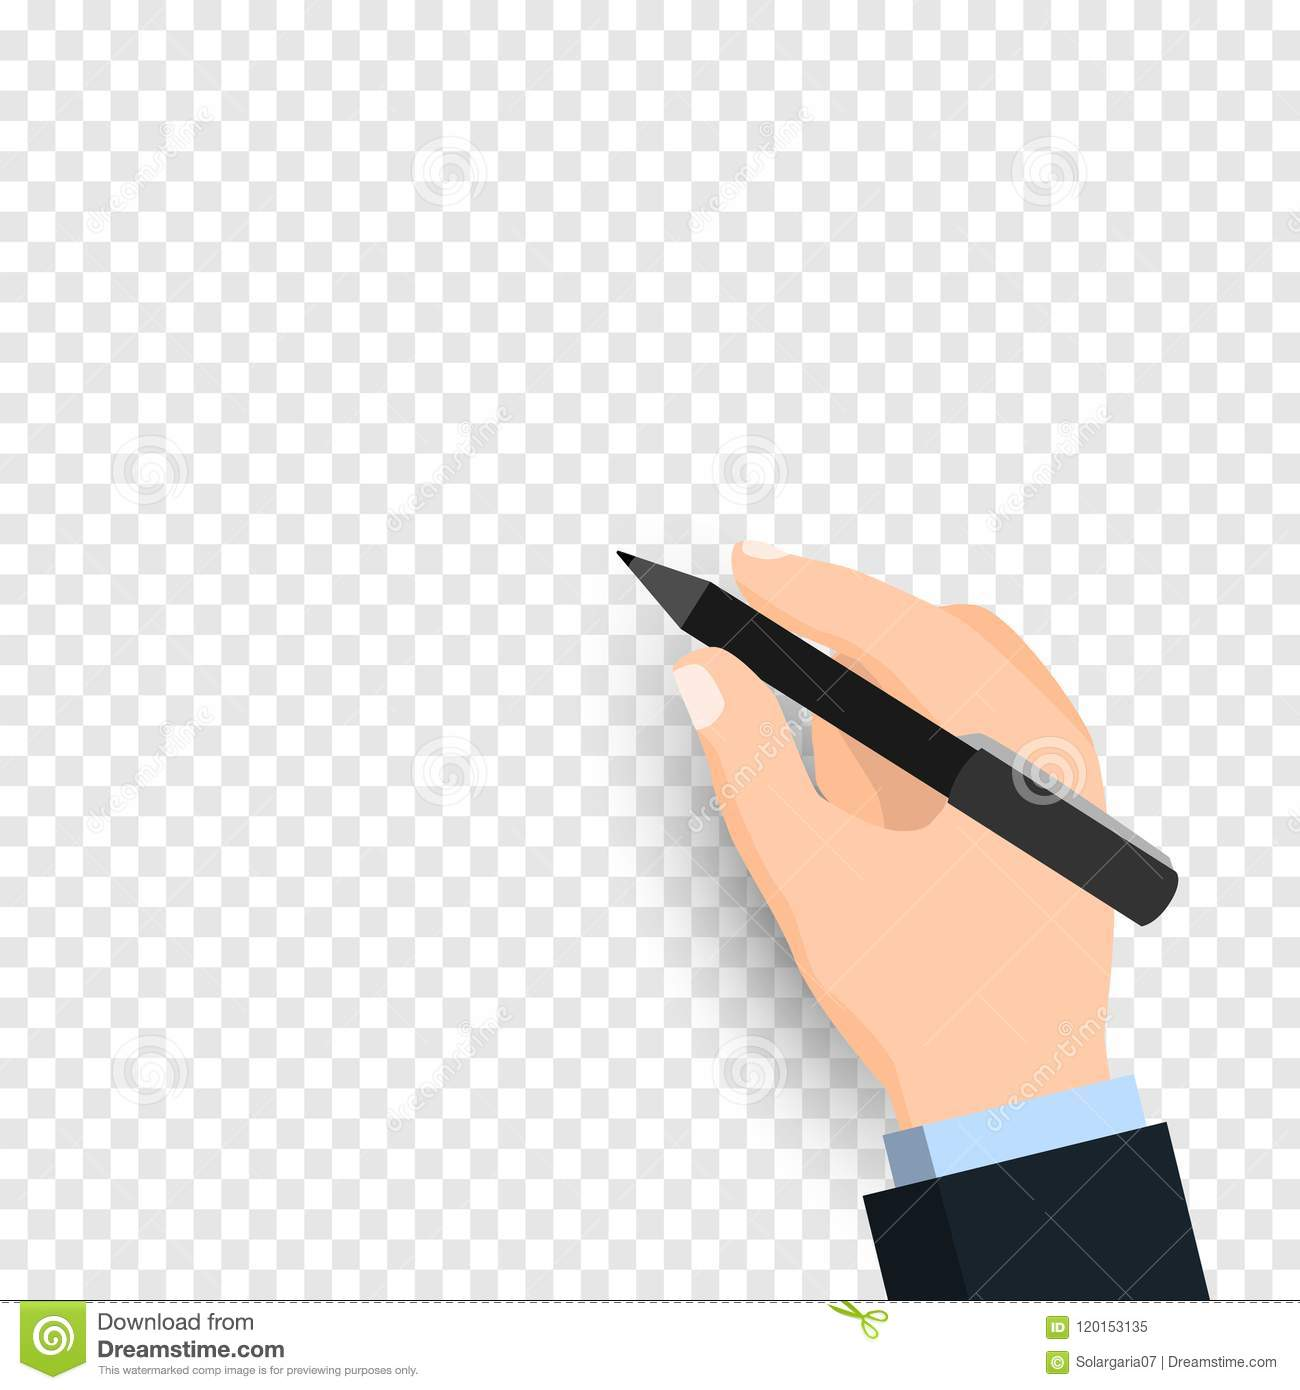 Hand Holding Pen And Writing Isolated On 820378 Png Images Pngio Gray pen, pen ace options ab touchscreen writing, hand with pen, ink, dryerase boards png. hand holding pen and writing isolated